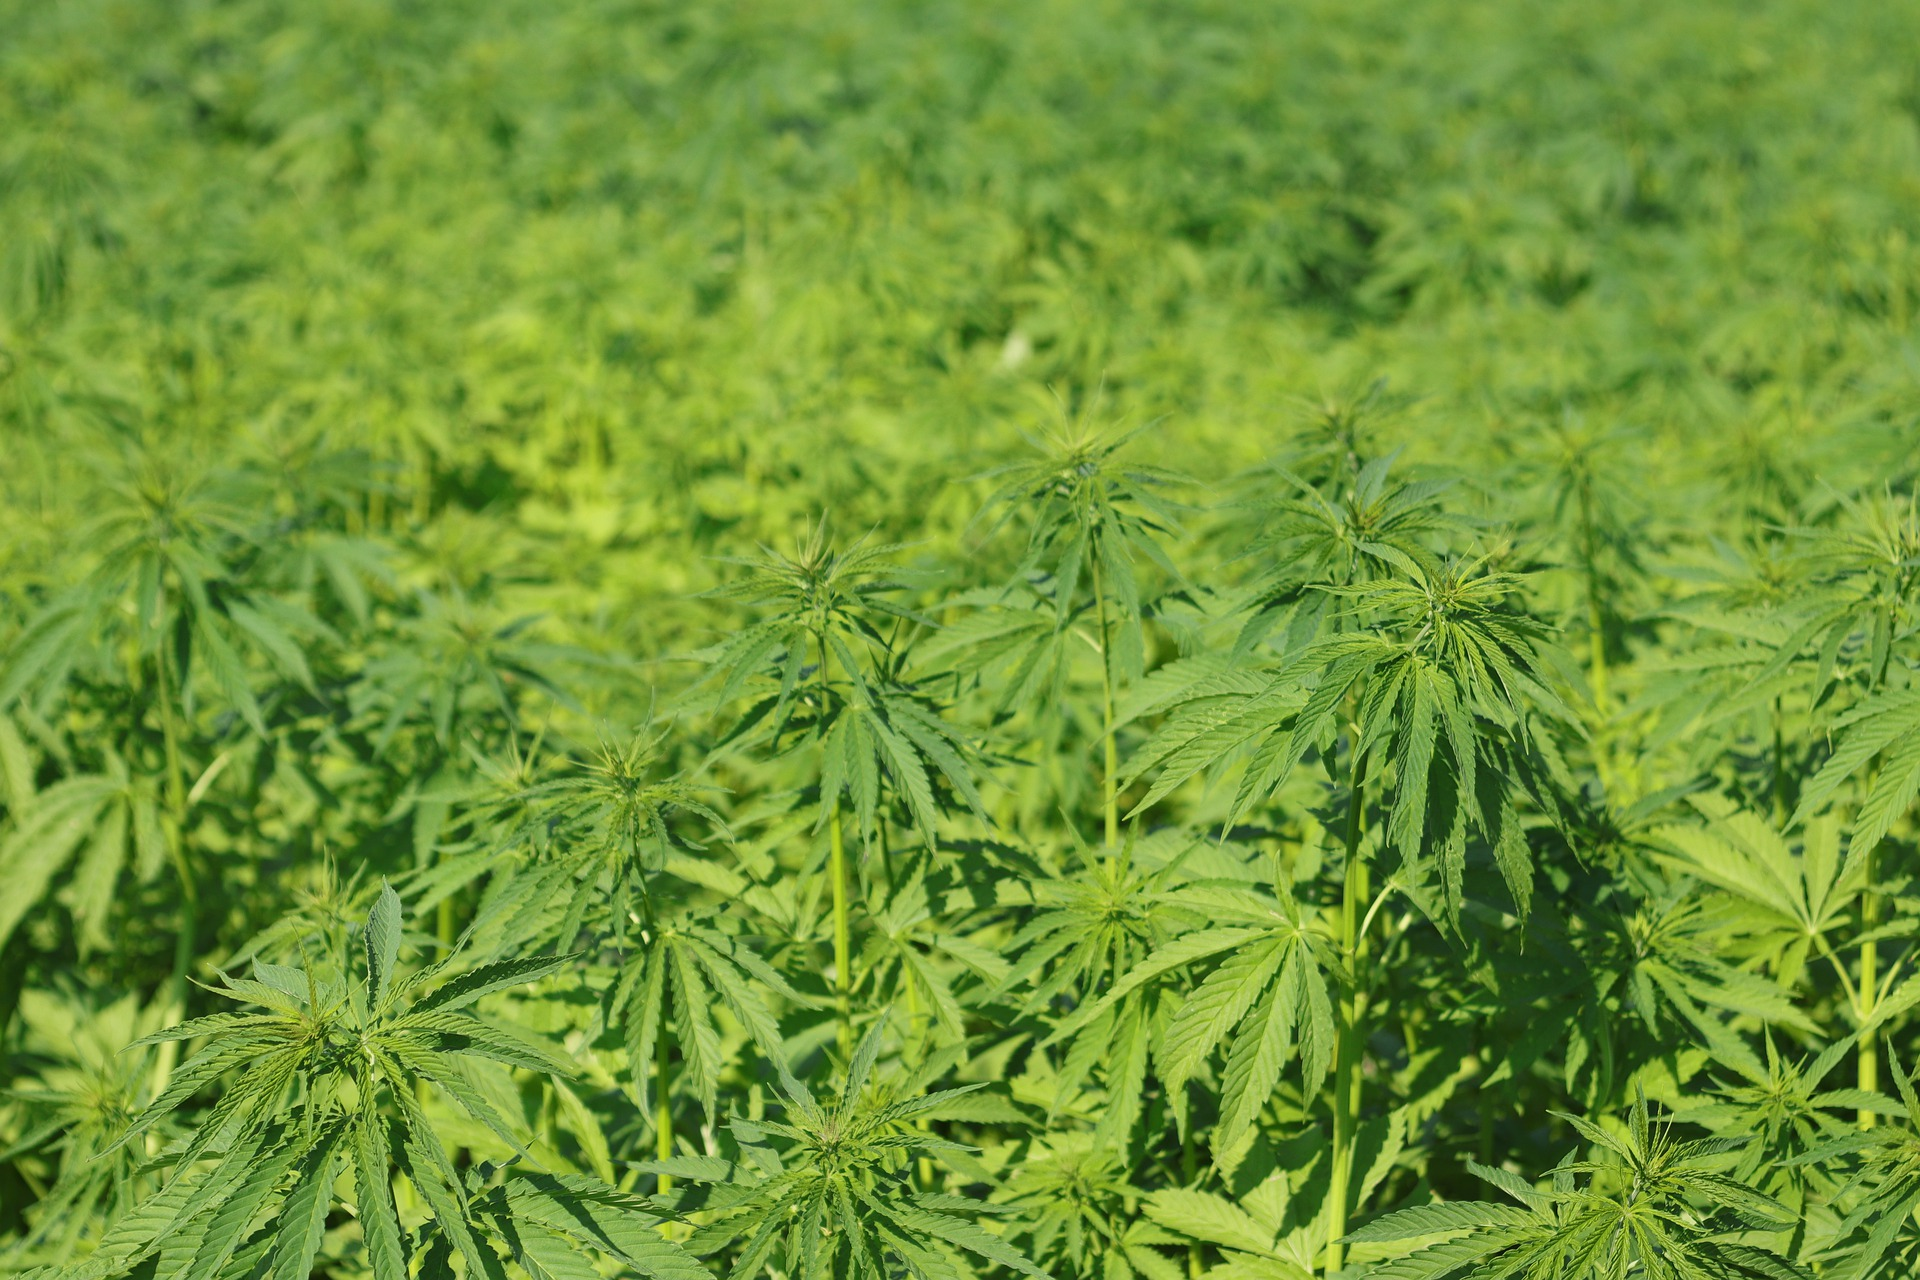 Hemp biomass ready for harvest